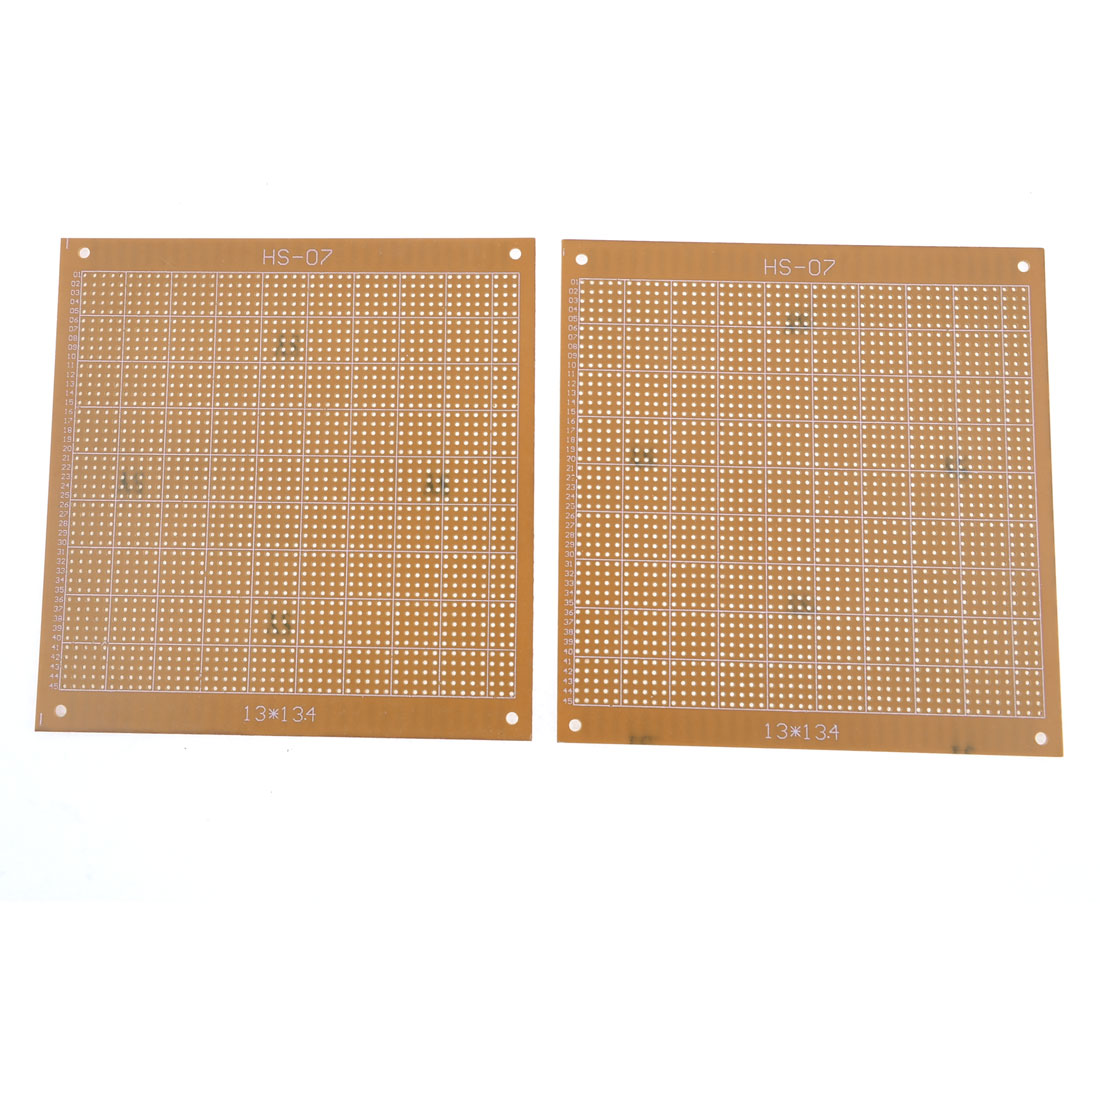 2pcs Solderable Stripboard Universal Prototyping PCB Board 13.4x13cm